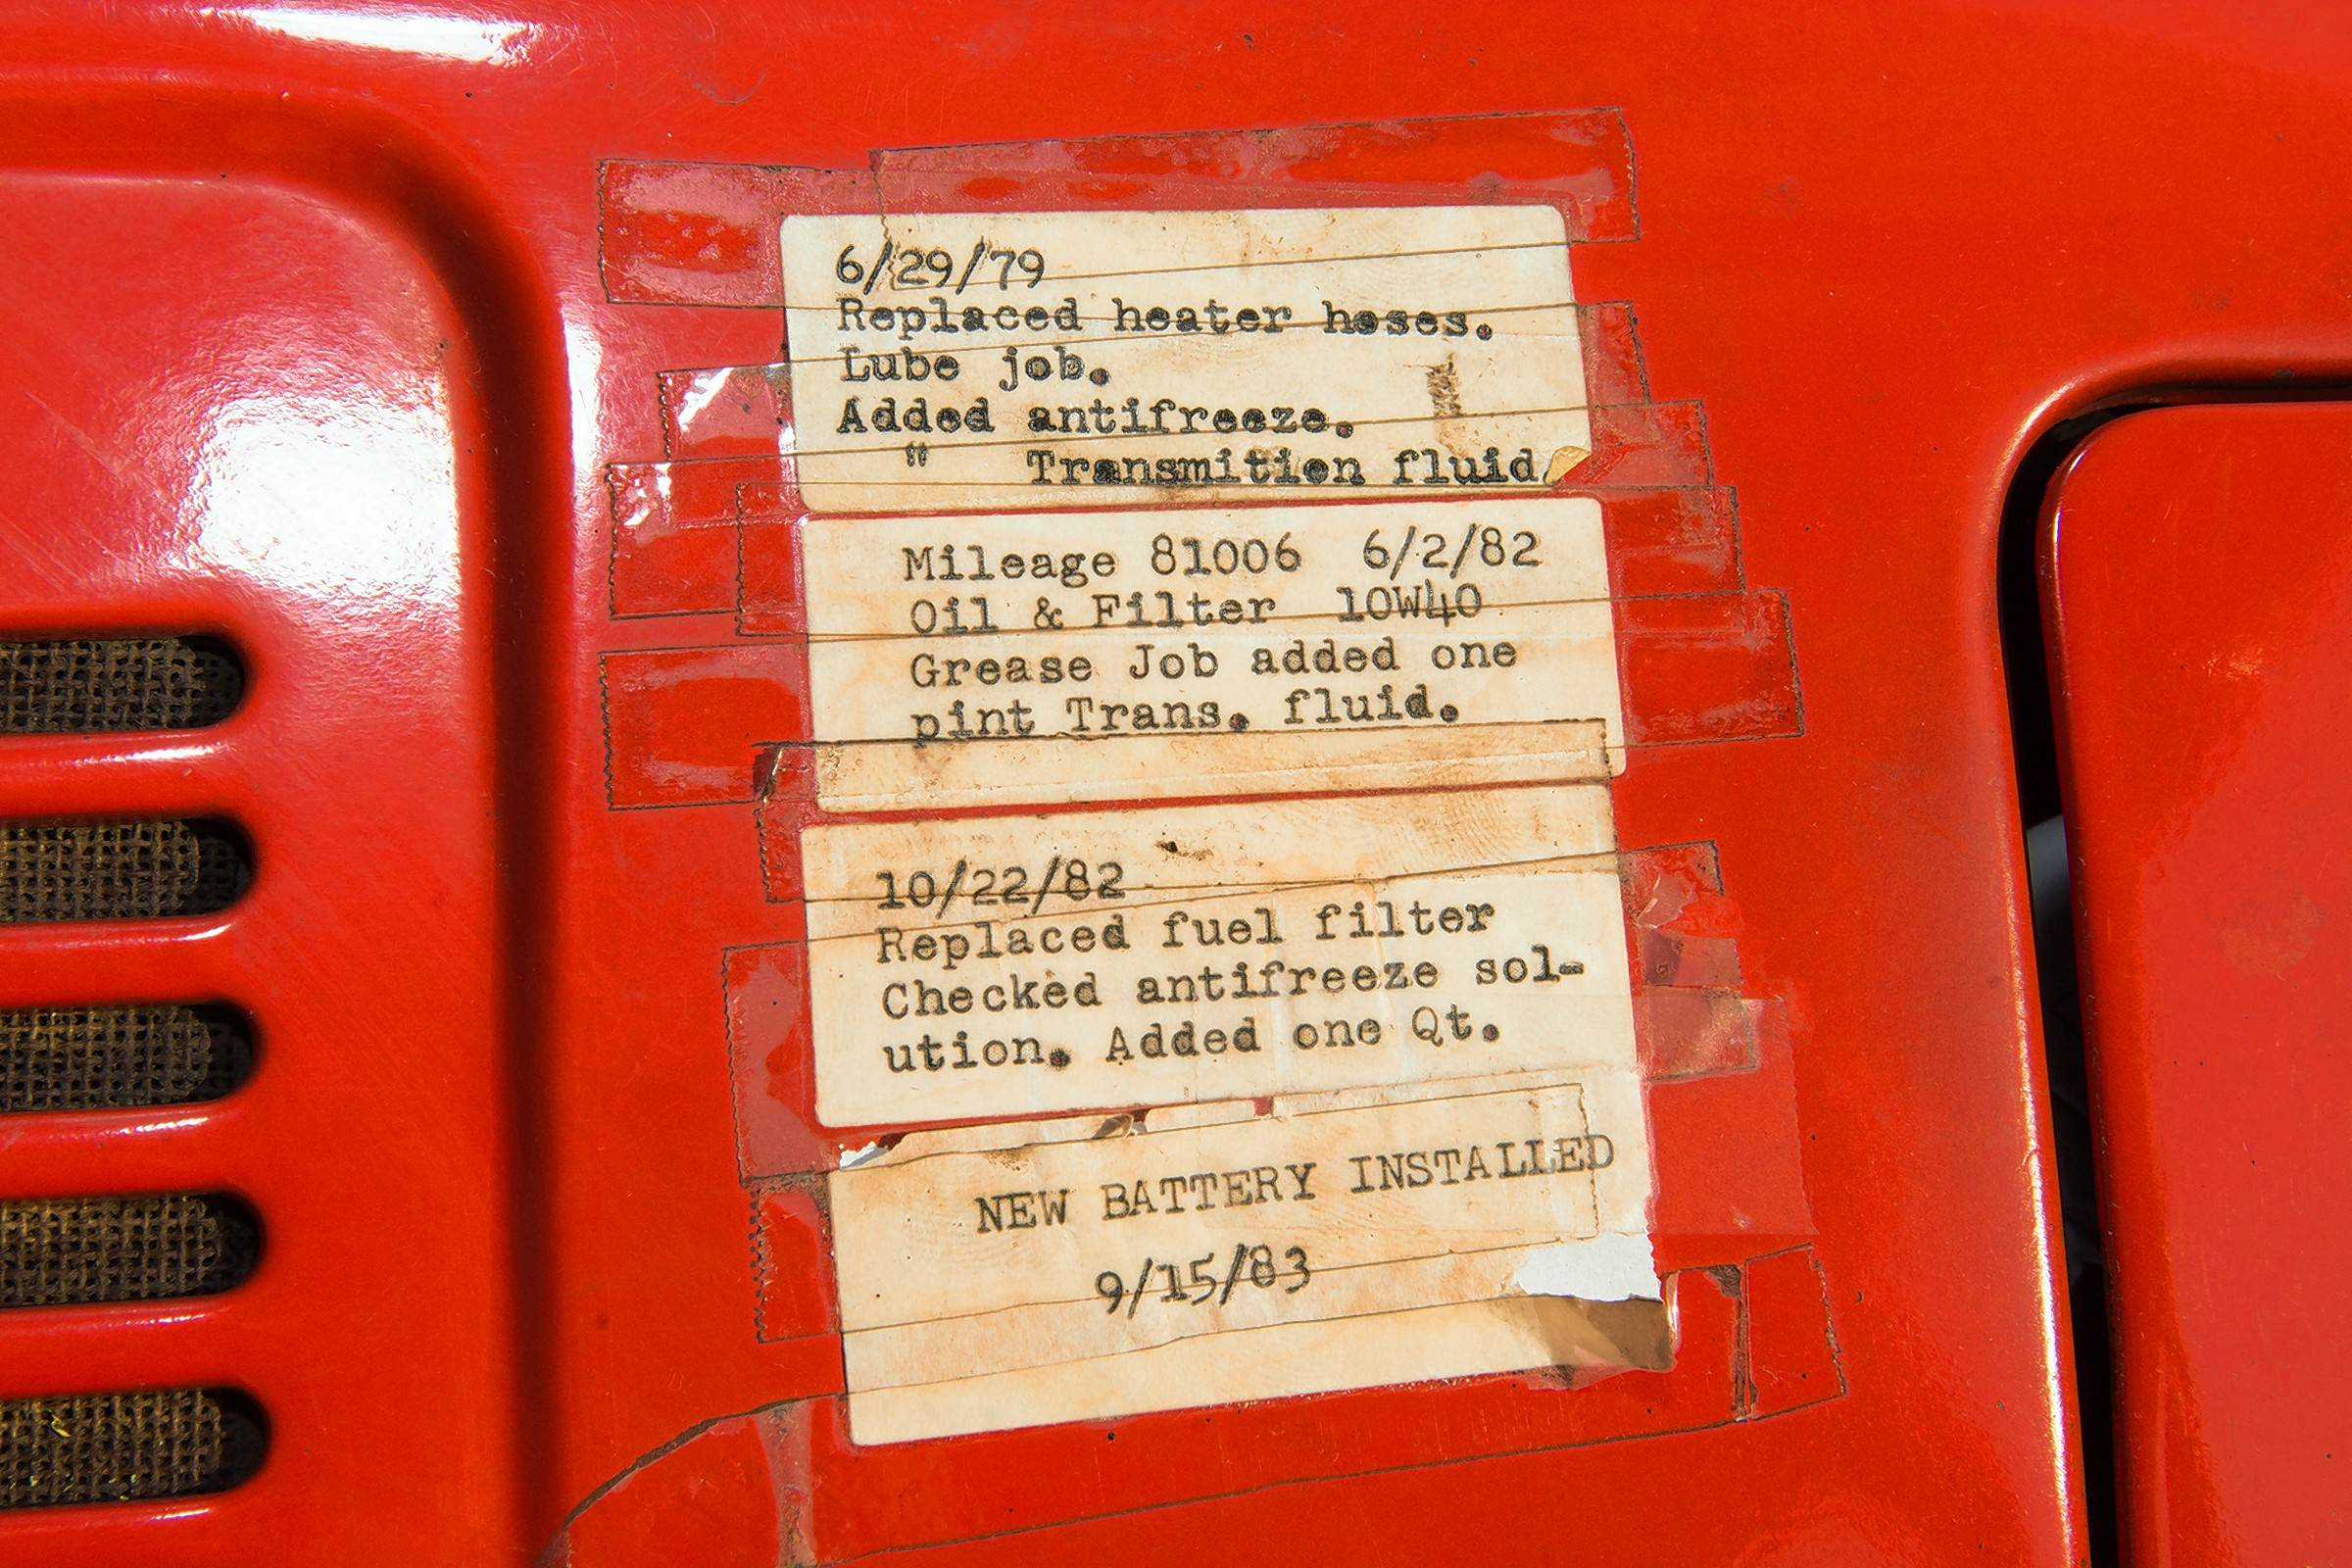 The original owner's maintenance records from the 1970s are still taped to the truck's dashboard.